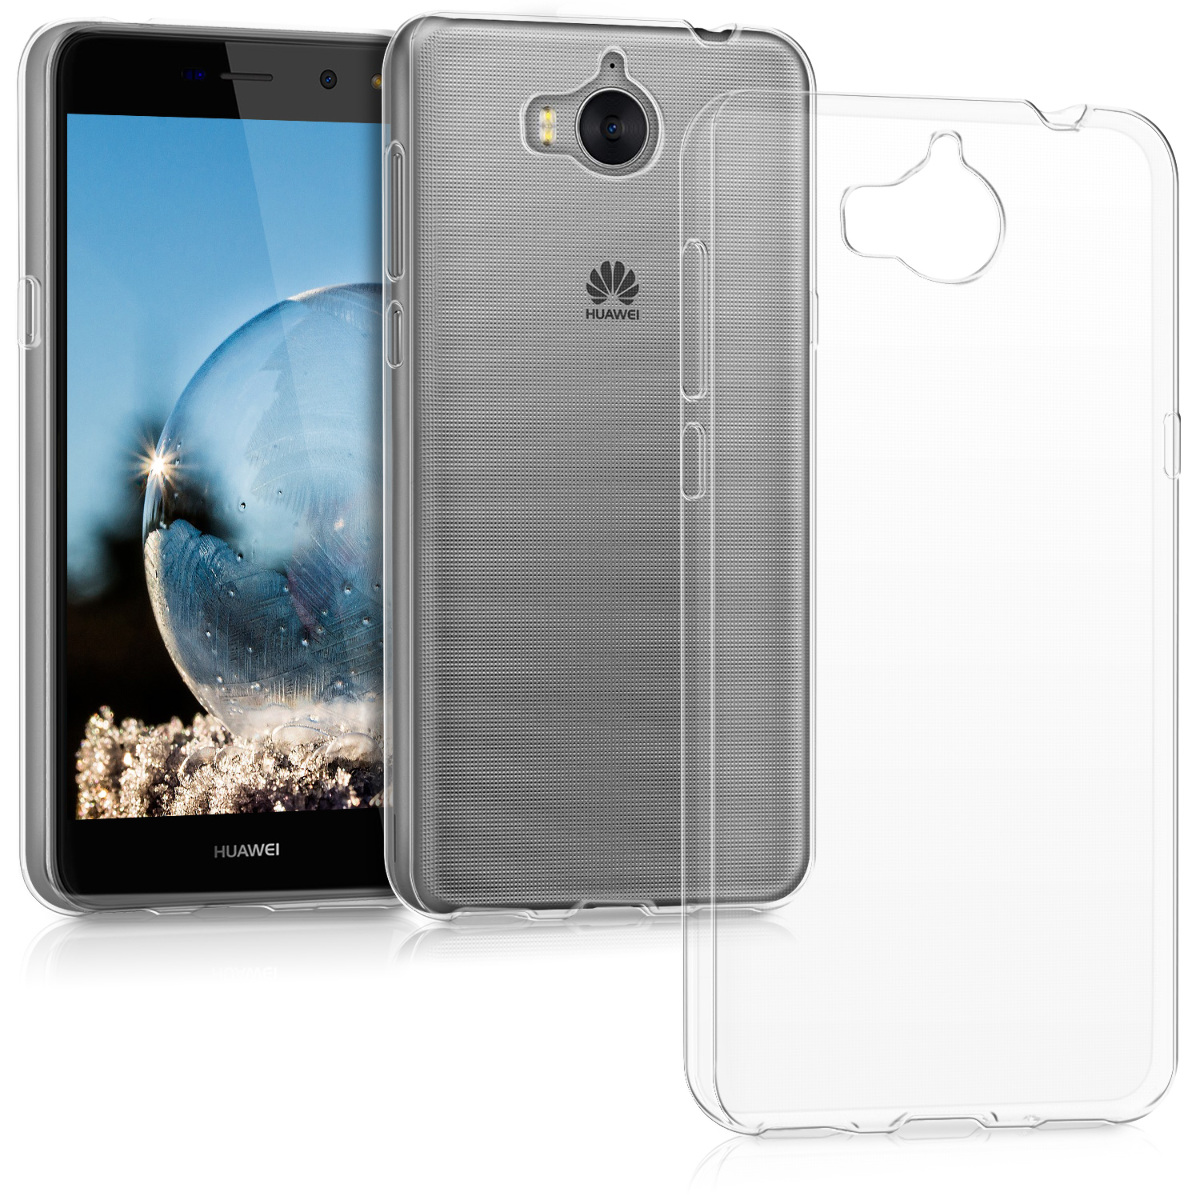 TPU SILICONE CRYSTAL CASE FOR HUAWEI Y6 (2017) SOFT COVER SILICON PROTECTION | eBay